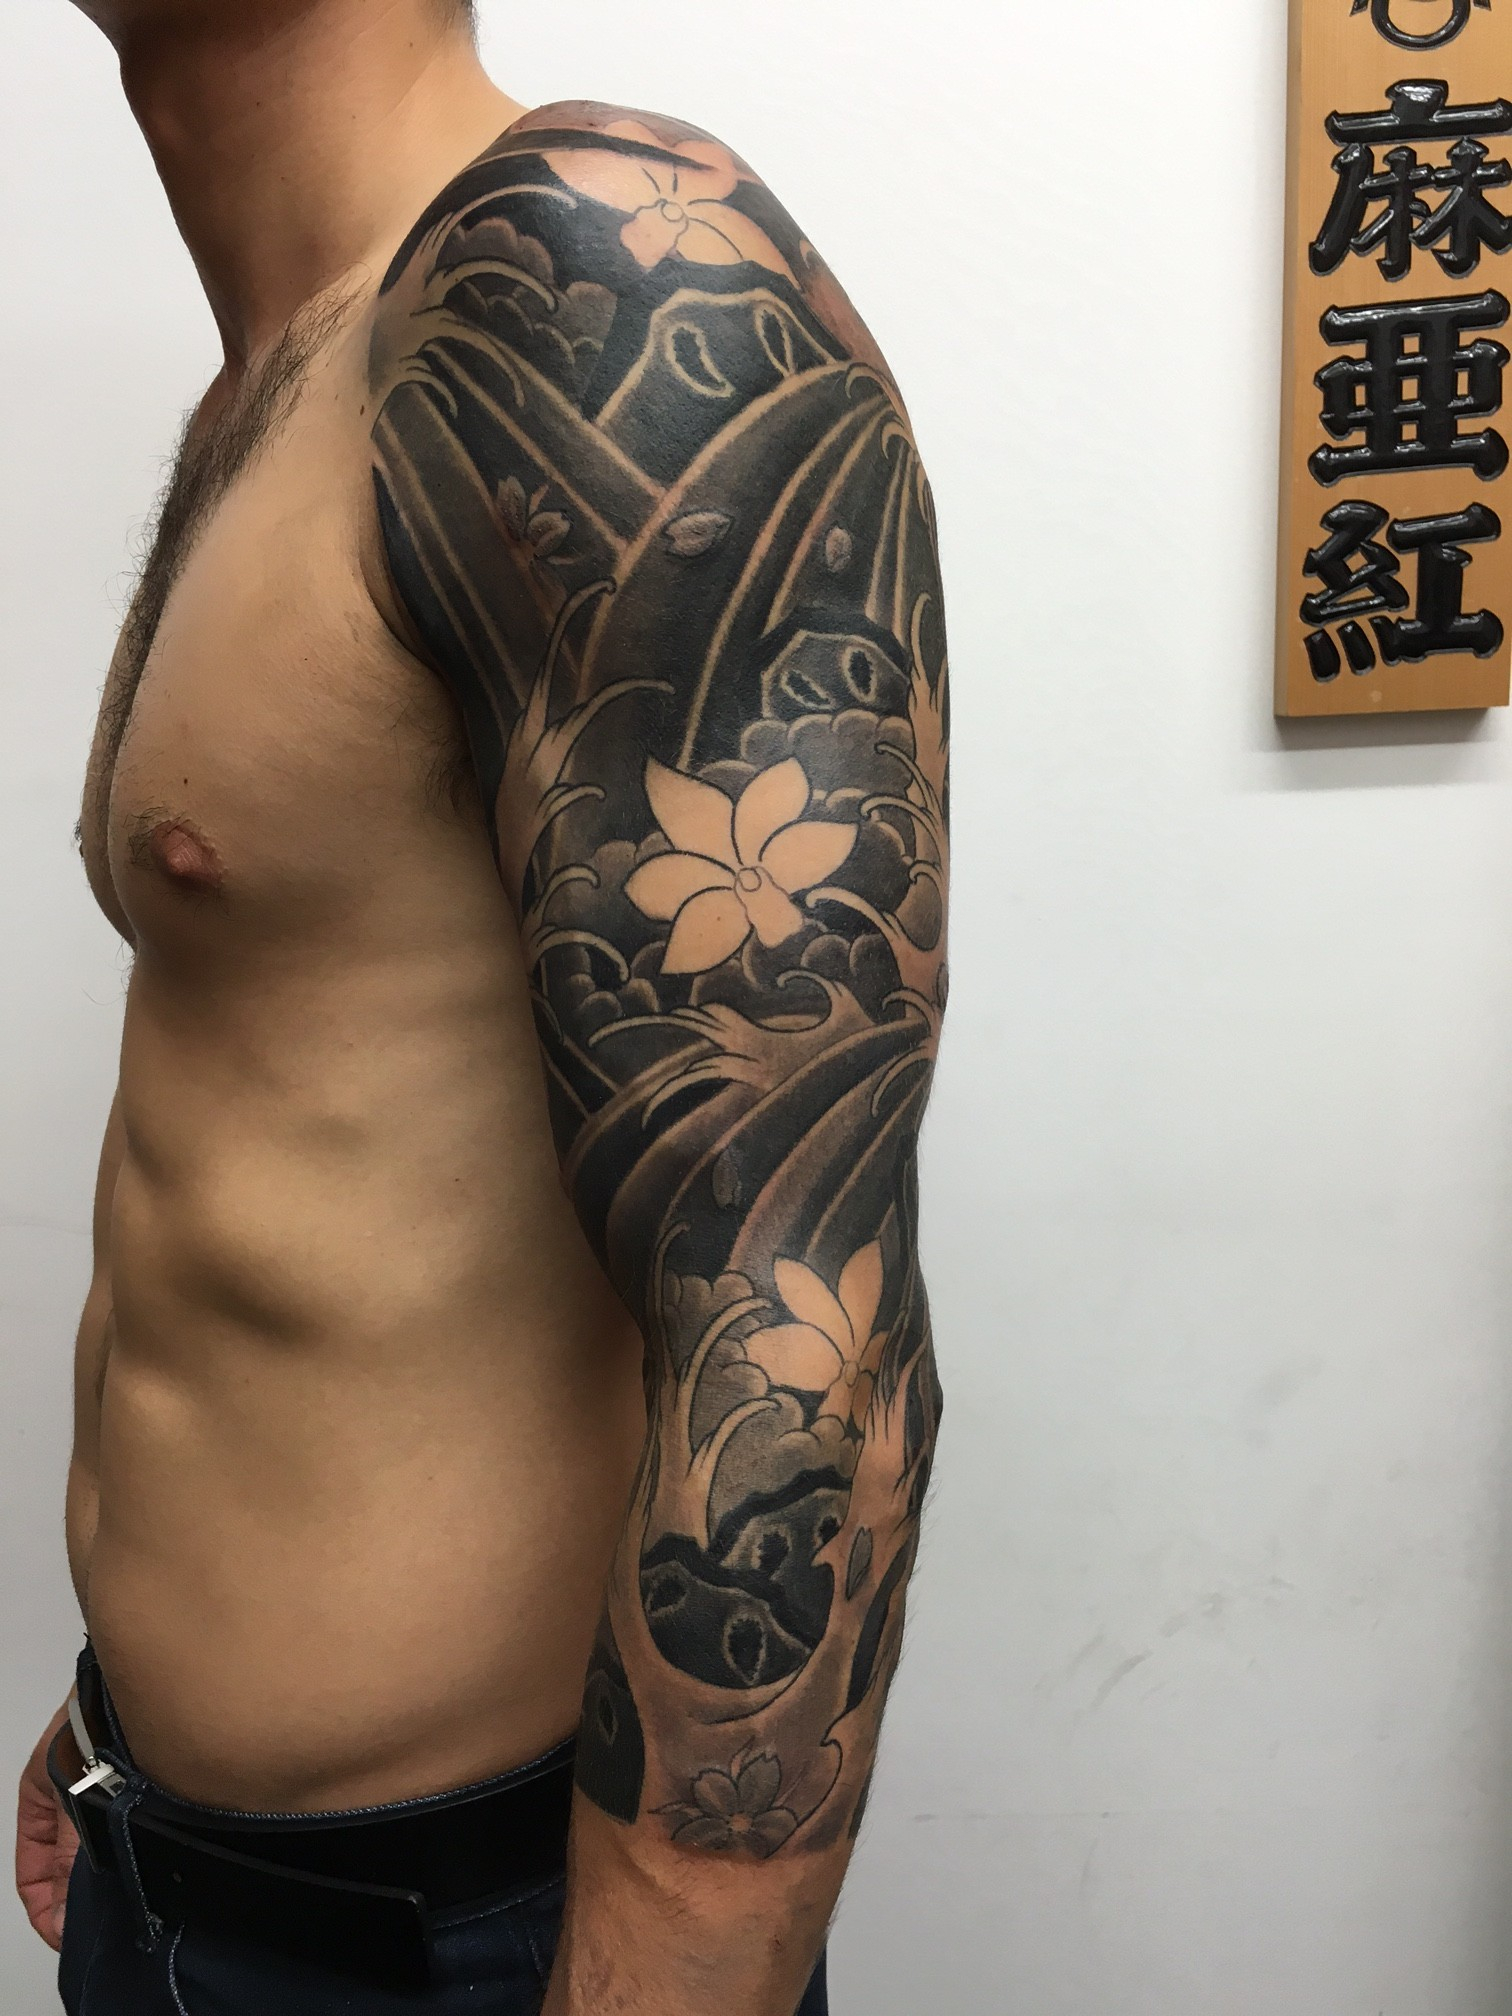 Best Traditional Japanese Style Tattoo Artists In Perth Primitive inside measurements 1512 X 2016